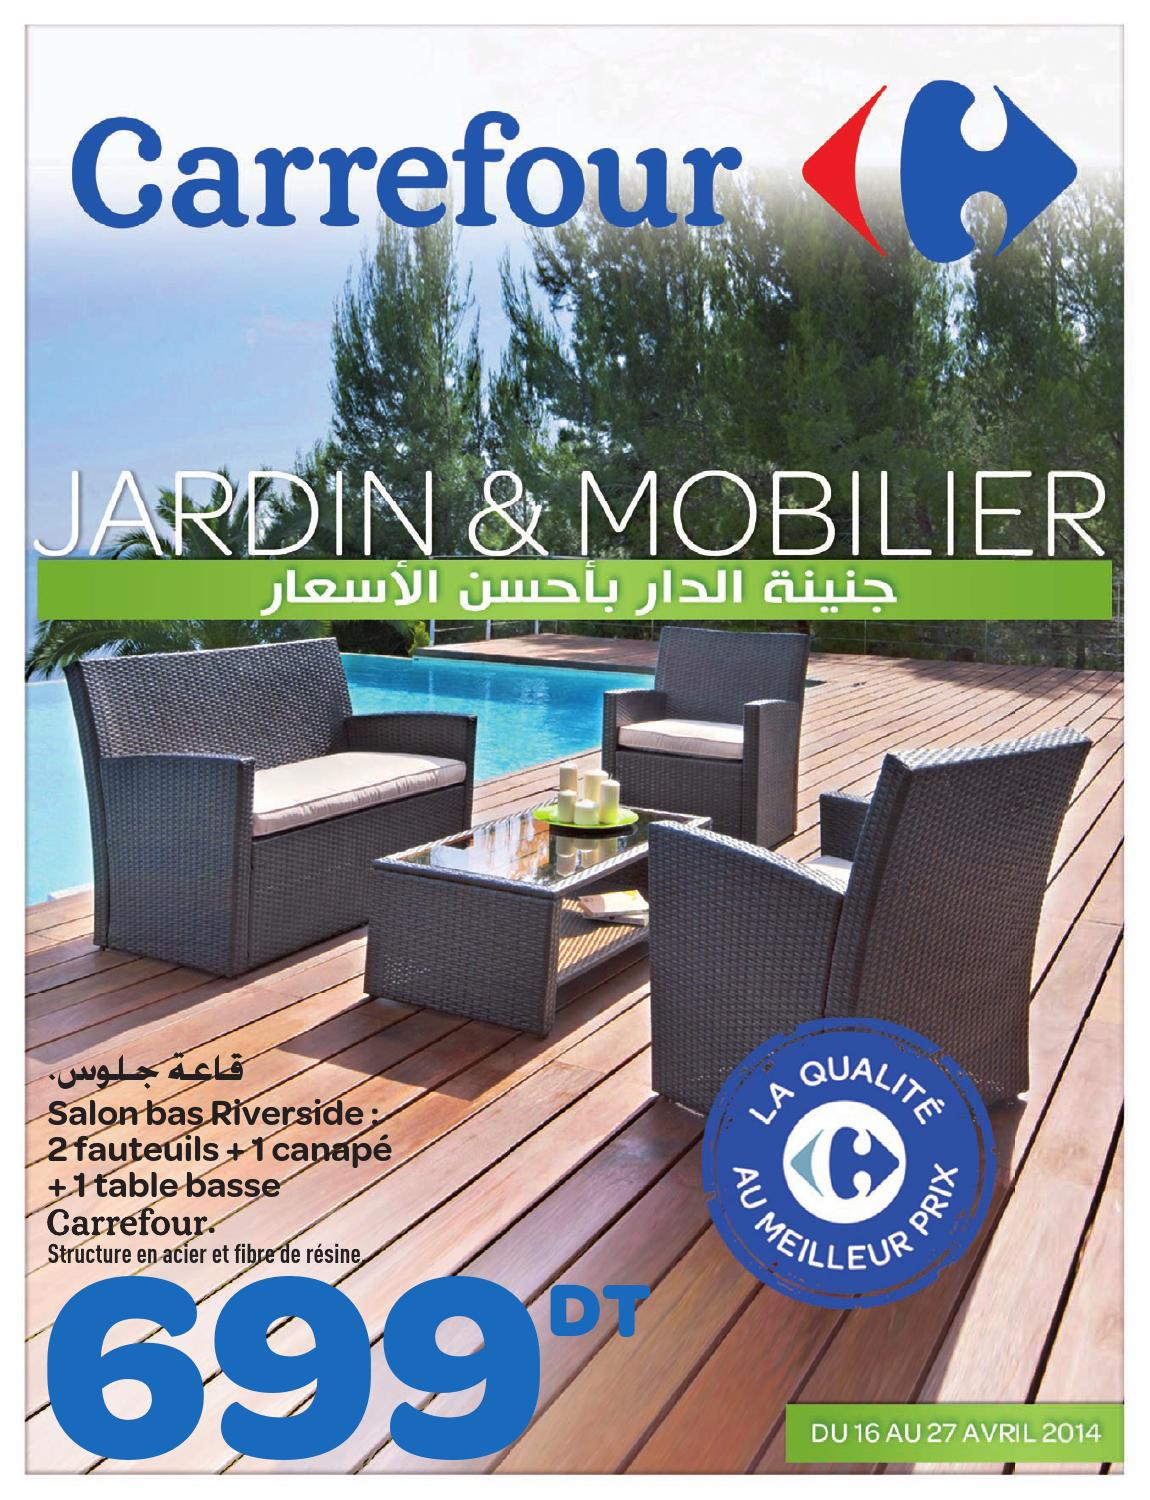 Catalogue carrefour jardin et mobilier by carrefour for Carrefour jardin